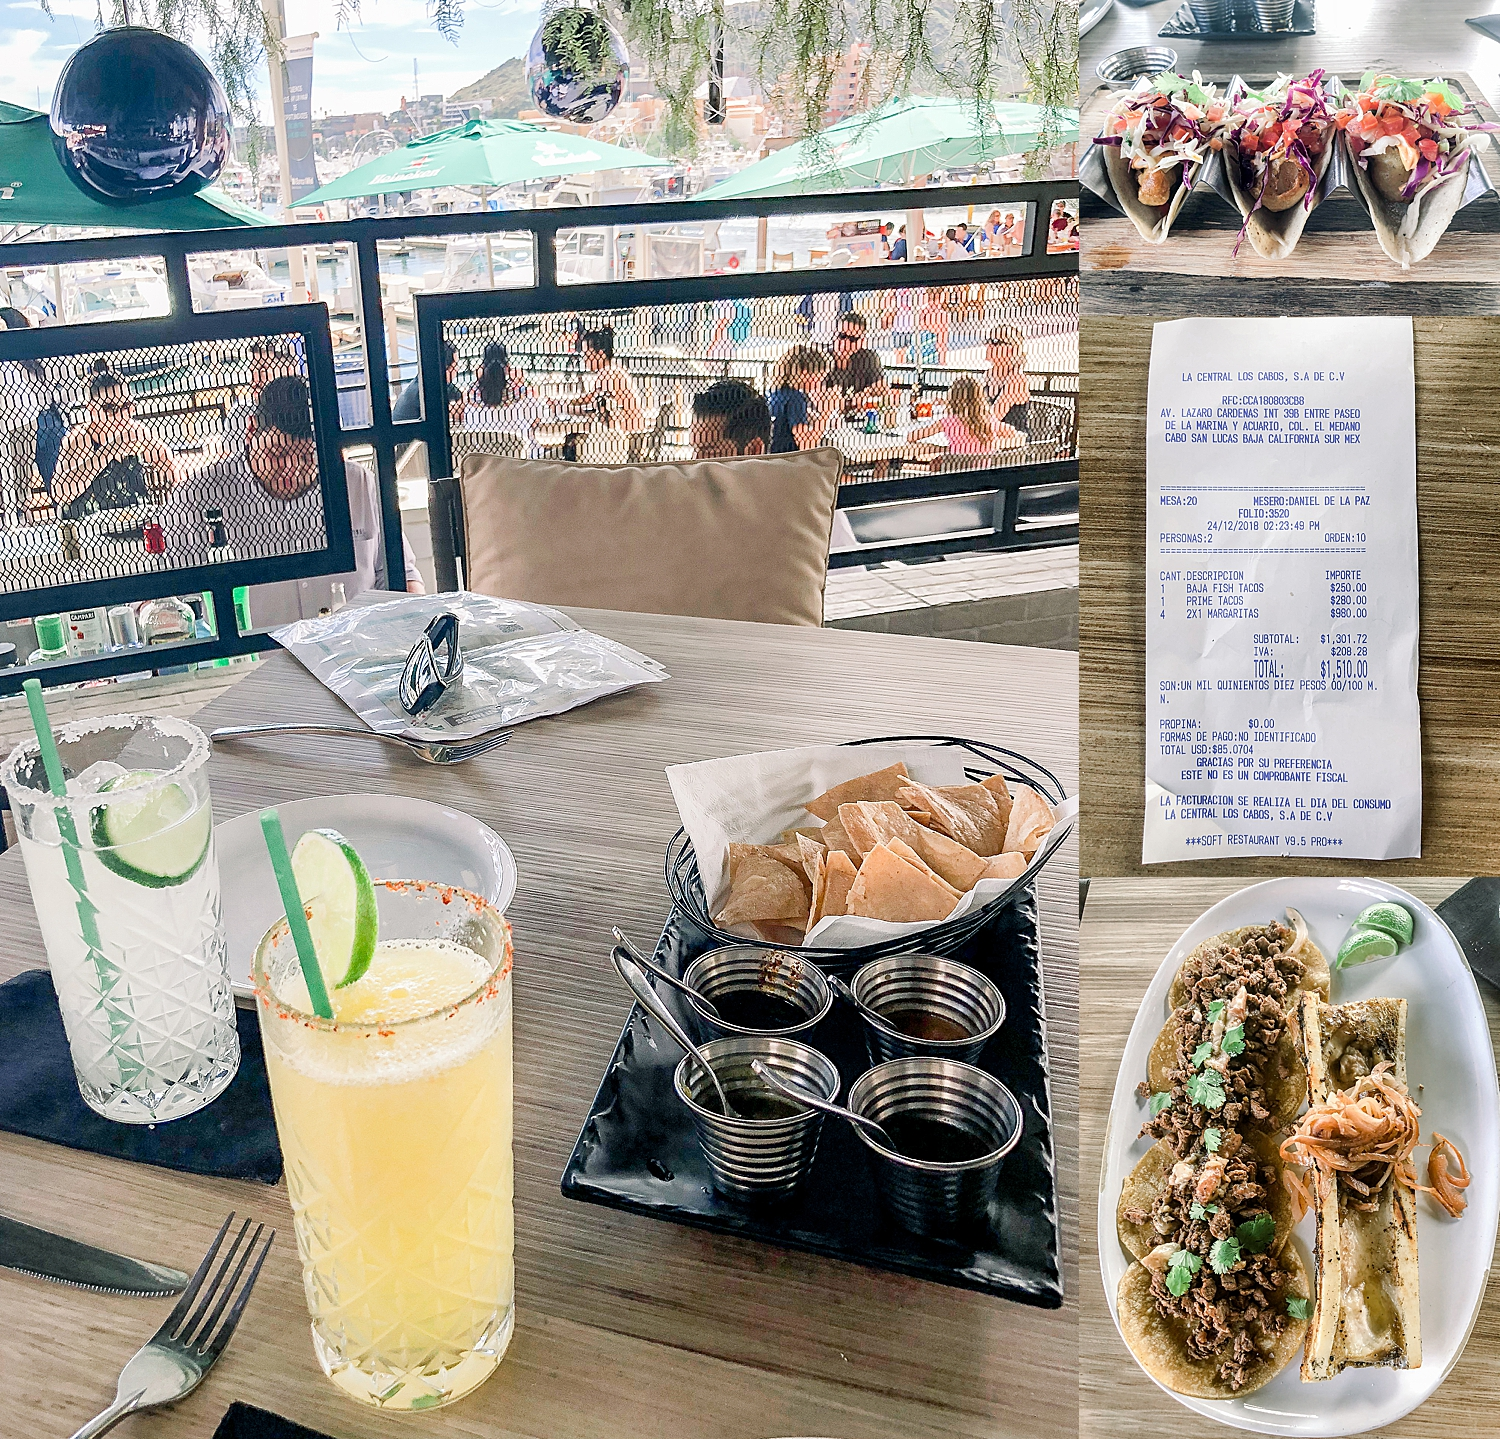 Delicious lunch at La Central in Cabo San Lucas - port of call for the Carnival Splendor. Photos by Jade Min.